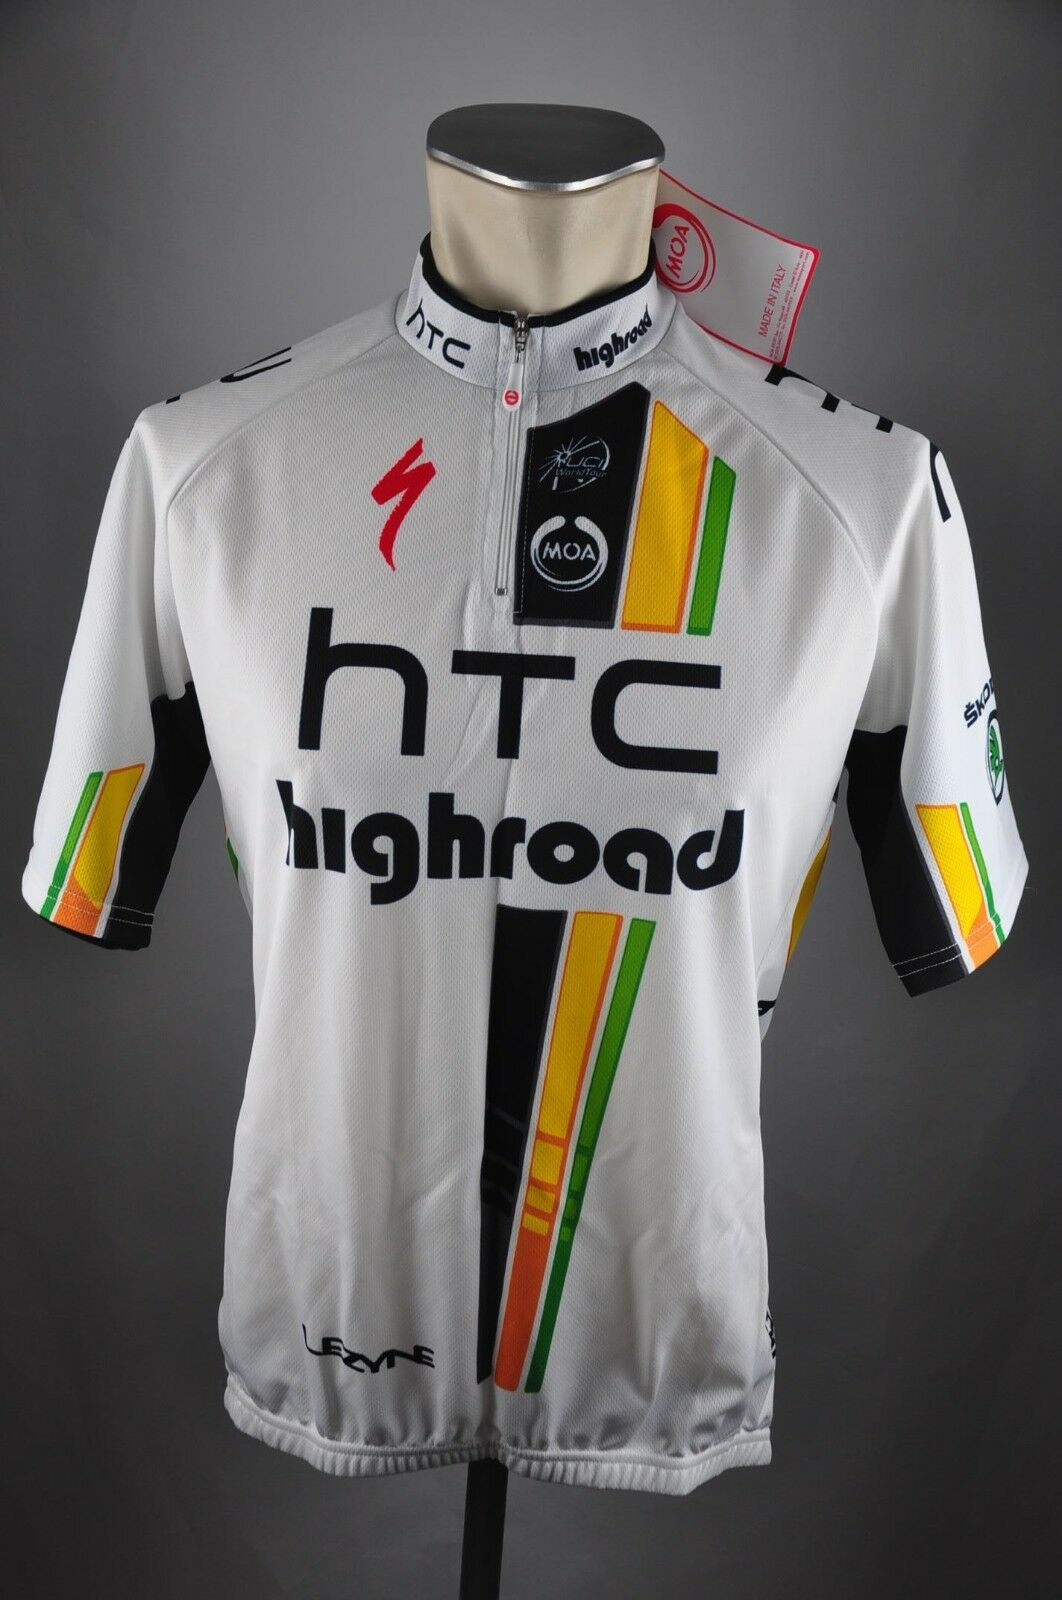 HTC highroad MOA Trikot Gr. 6 BW 56cm Bike cycling jersey Shirt FZ2